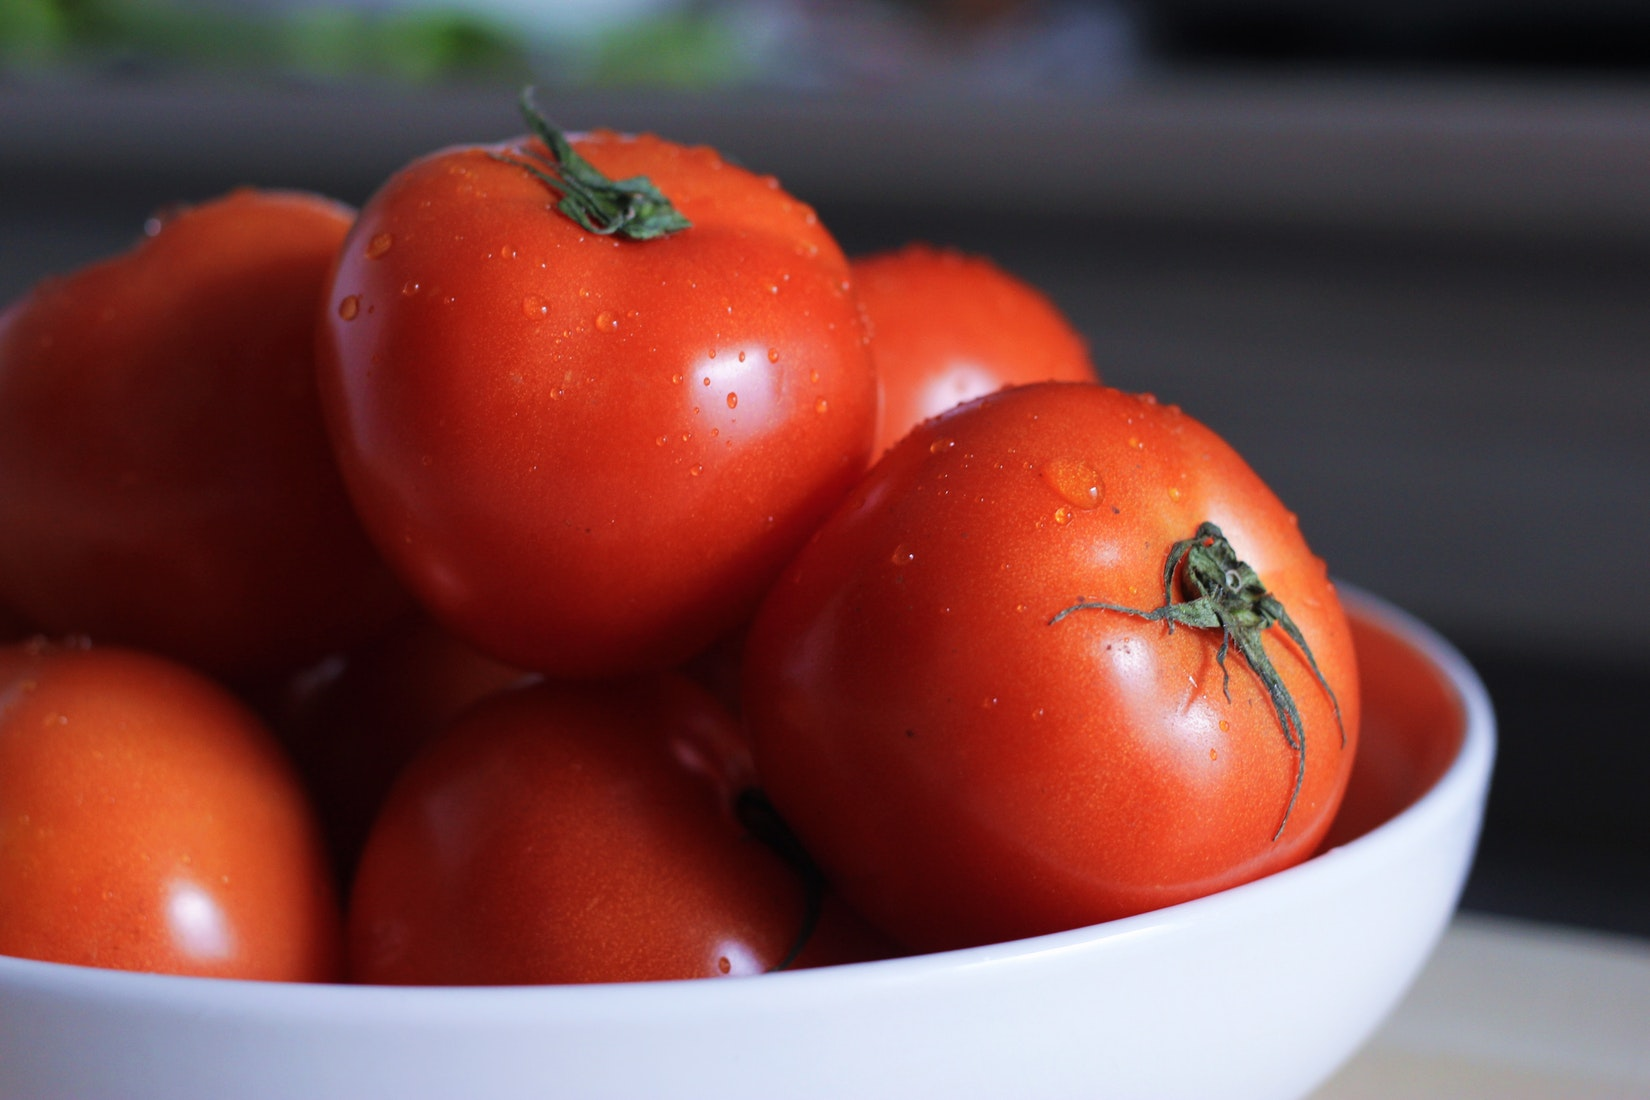 Tomatoes are a great anti-aging food, and are full of vitamins and nutrients that are great for your skin.